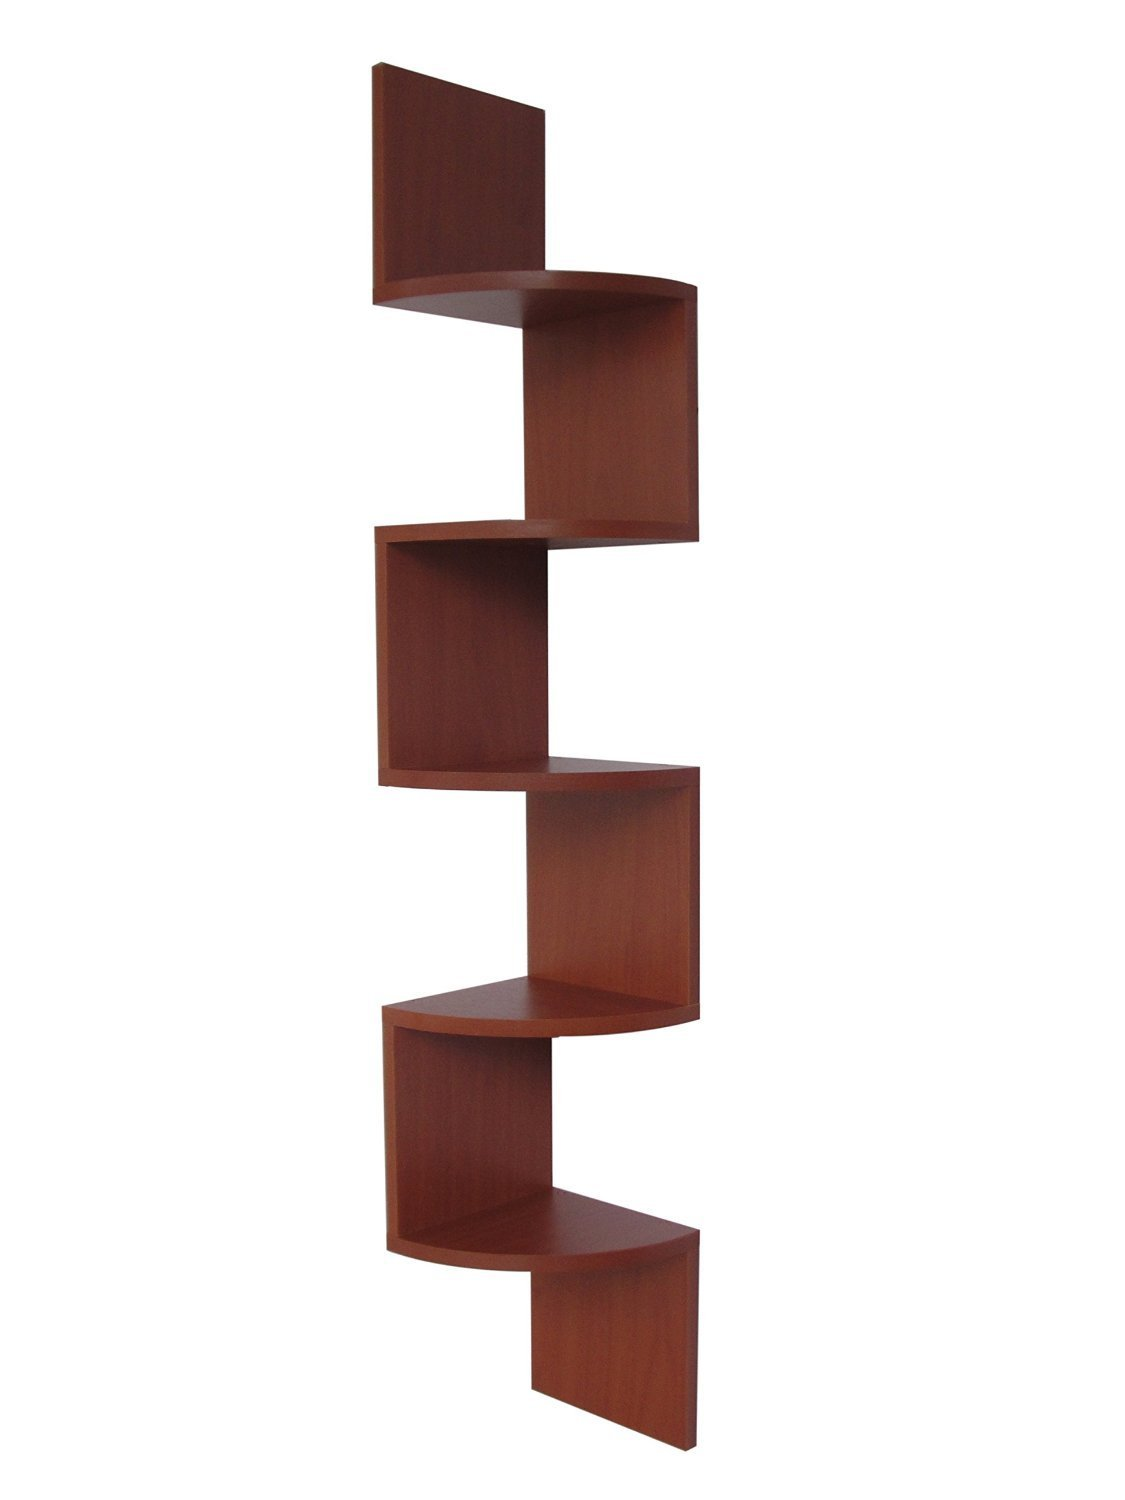 Delicieux Amazon.com: Stackable 5 Tier Oak Zig Zag Corner Wall Shelves   Cherry: Home  U0026 Kitchen